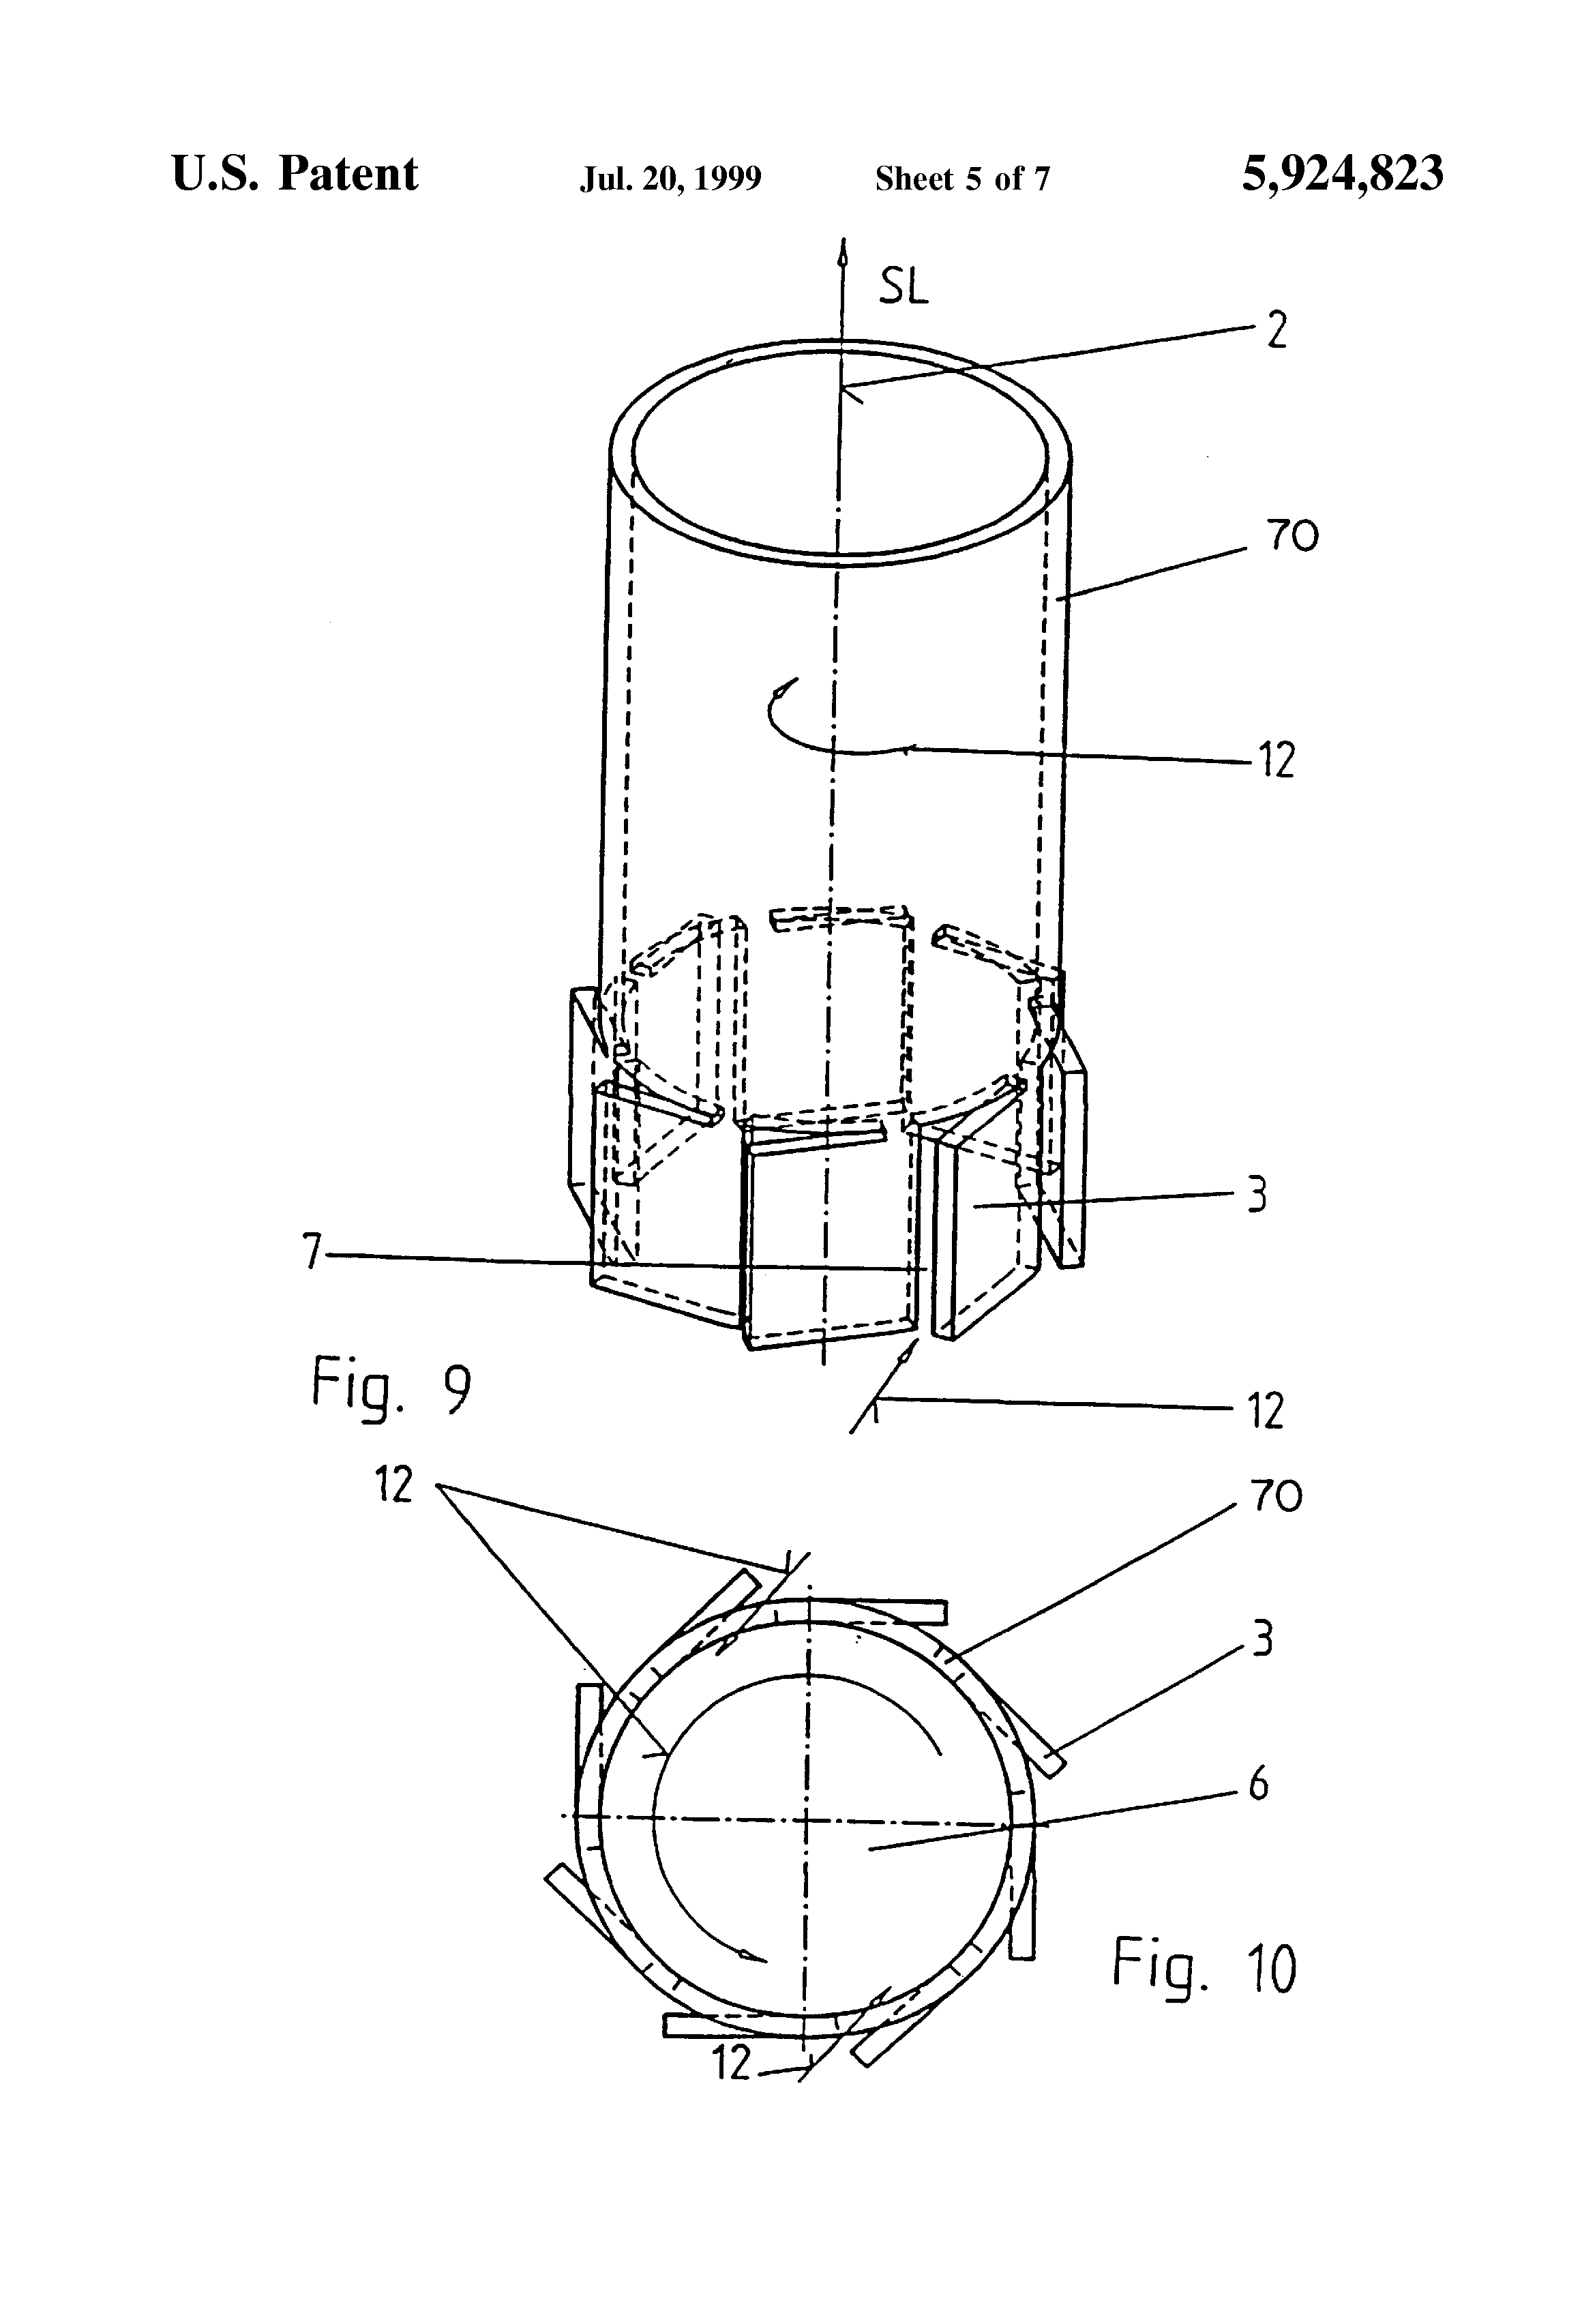 Patent US Suction nozzle method for operation and use